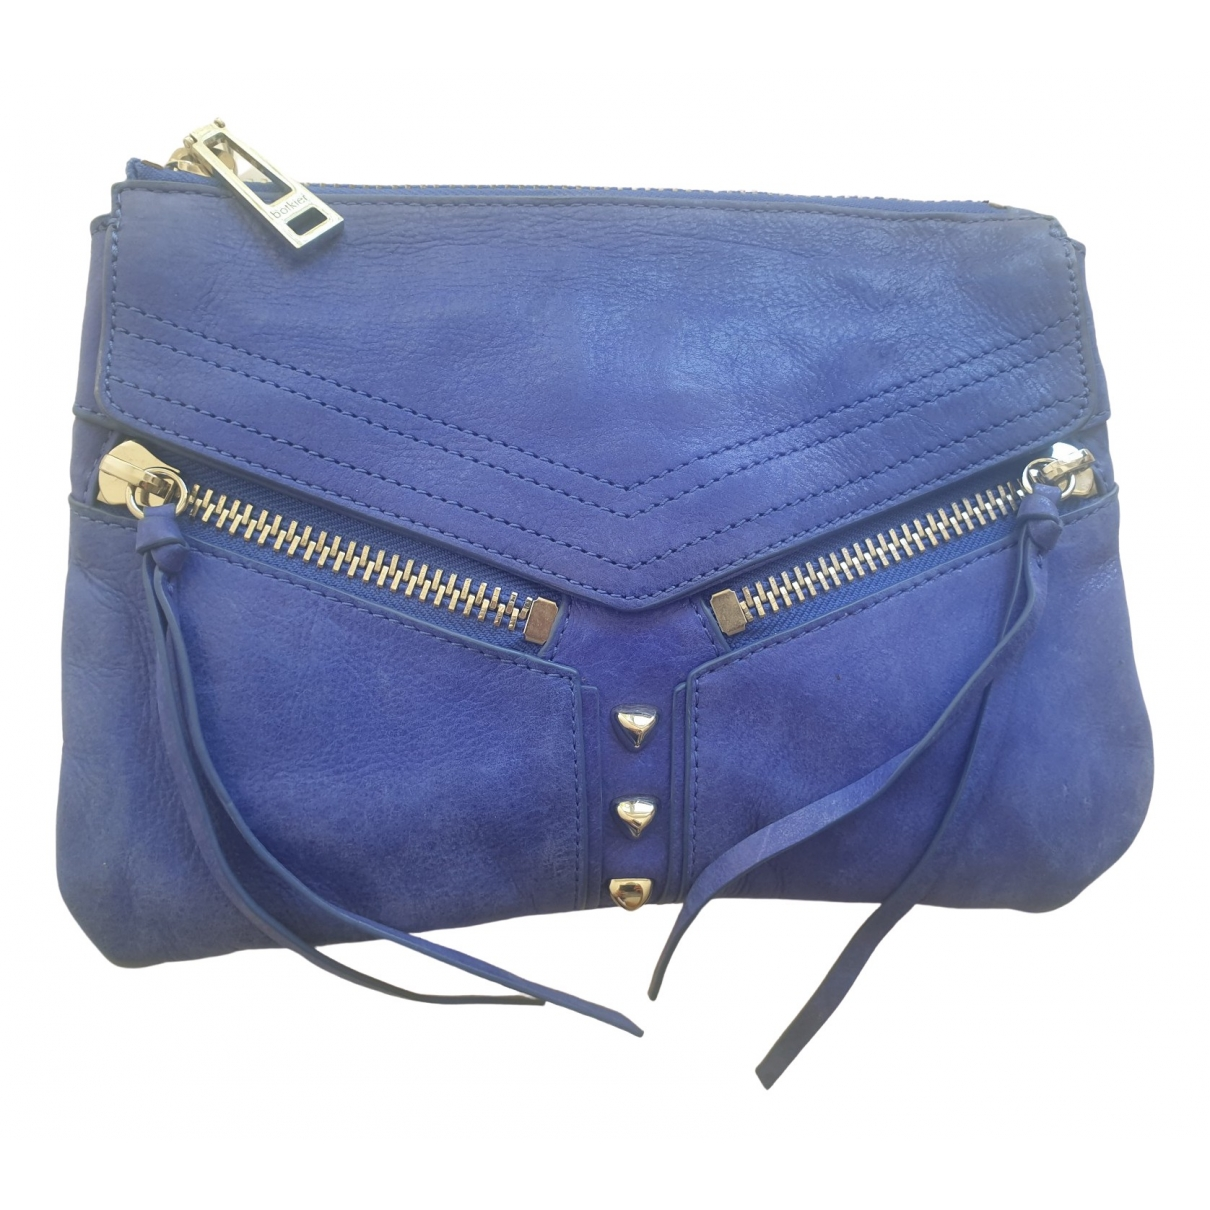 Botkier \N Clutch in  Blau Leder